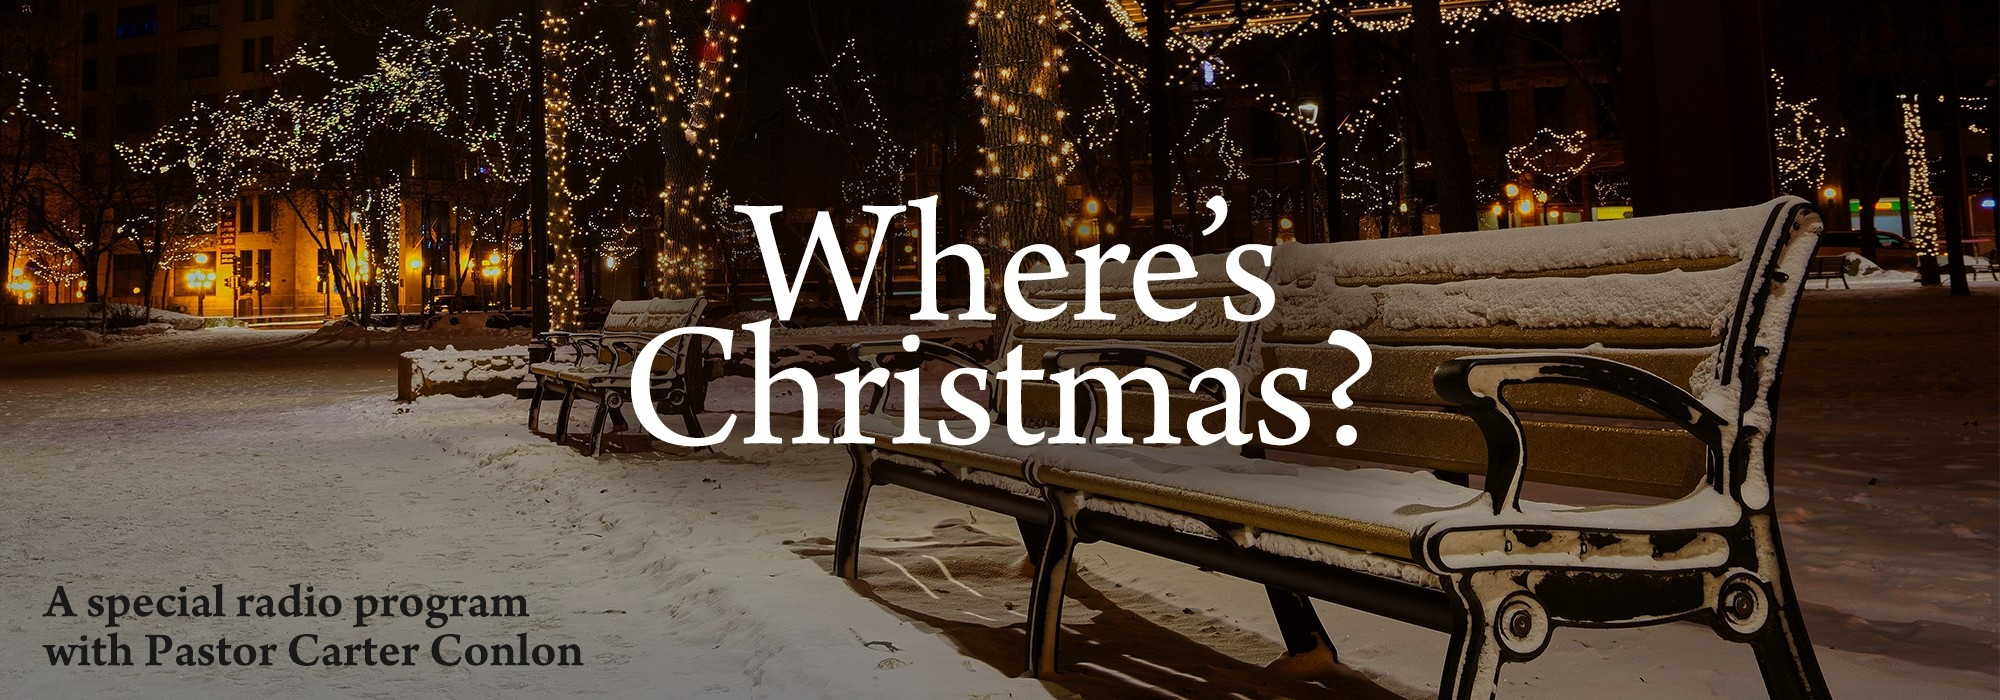 Christmas Specials 2019.Christmas New Year S 2018 2019 Times Square Church